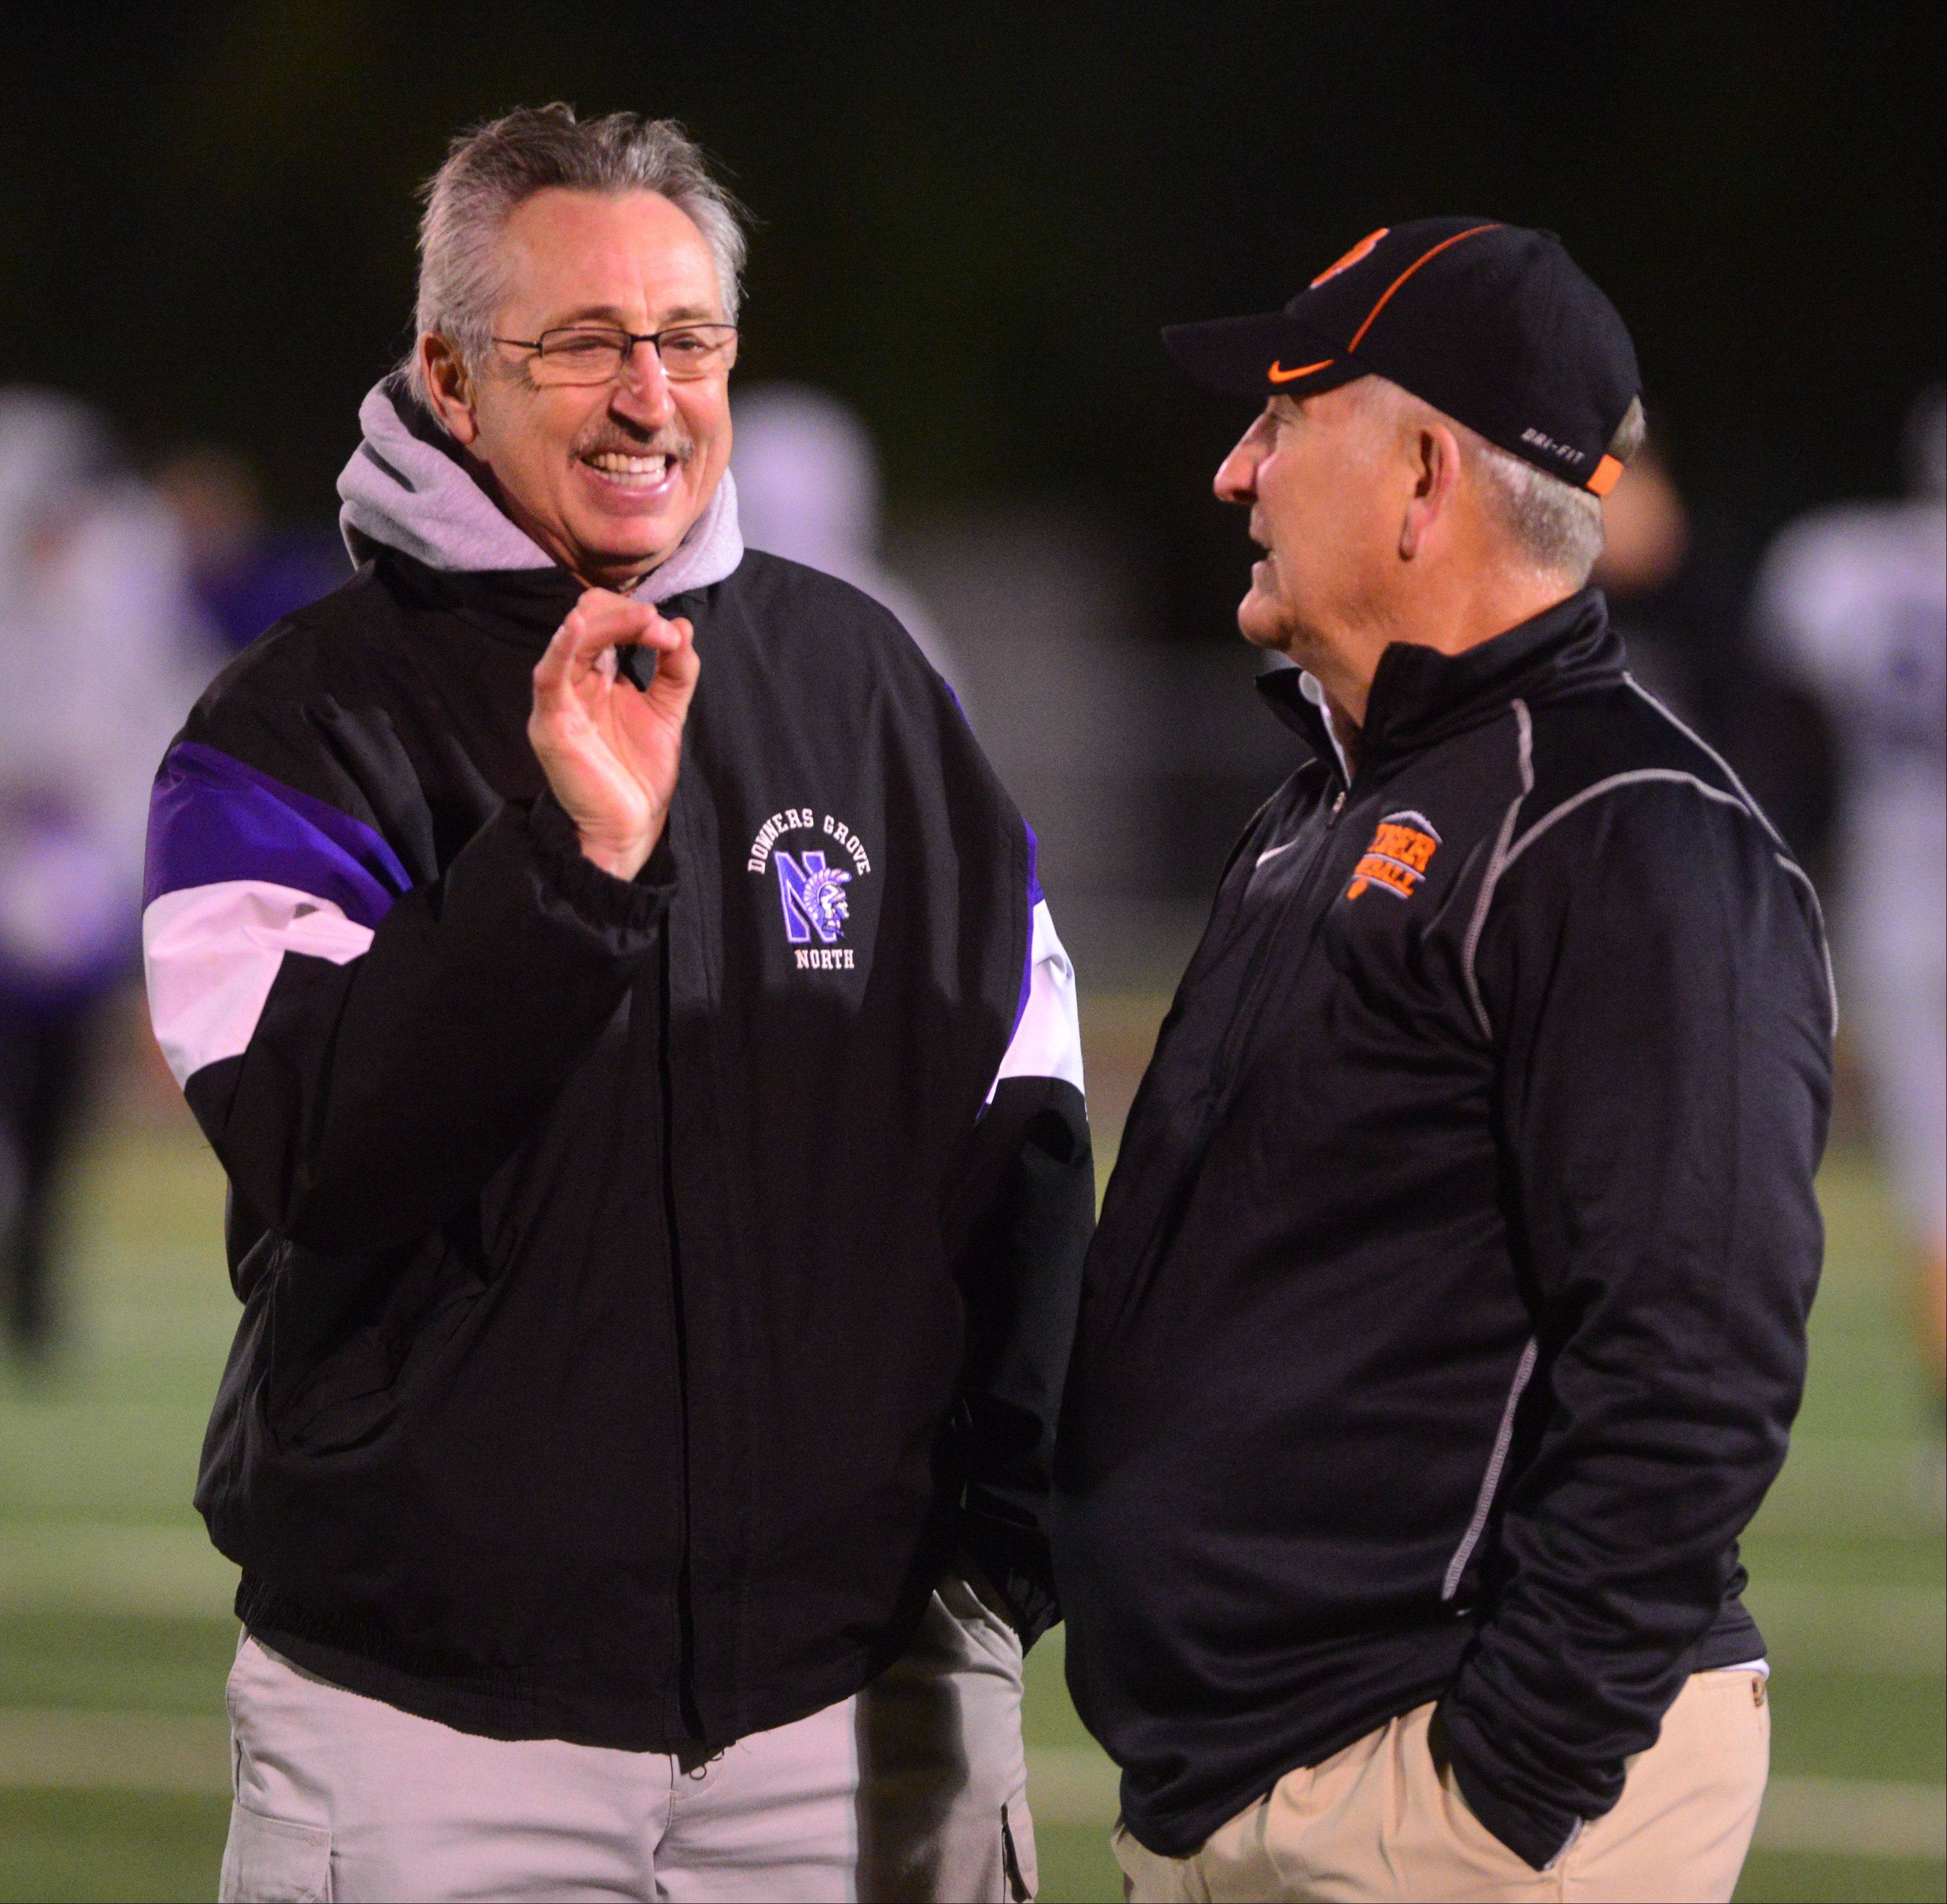 Playoffs -Round Two- Photos from the Downers Grove North vs. Wheaton Warrenville South football game in Wheaton on Friday, Nov. 8.